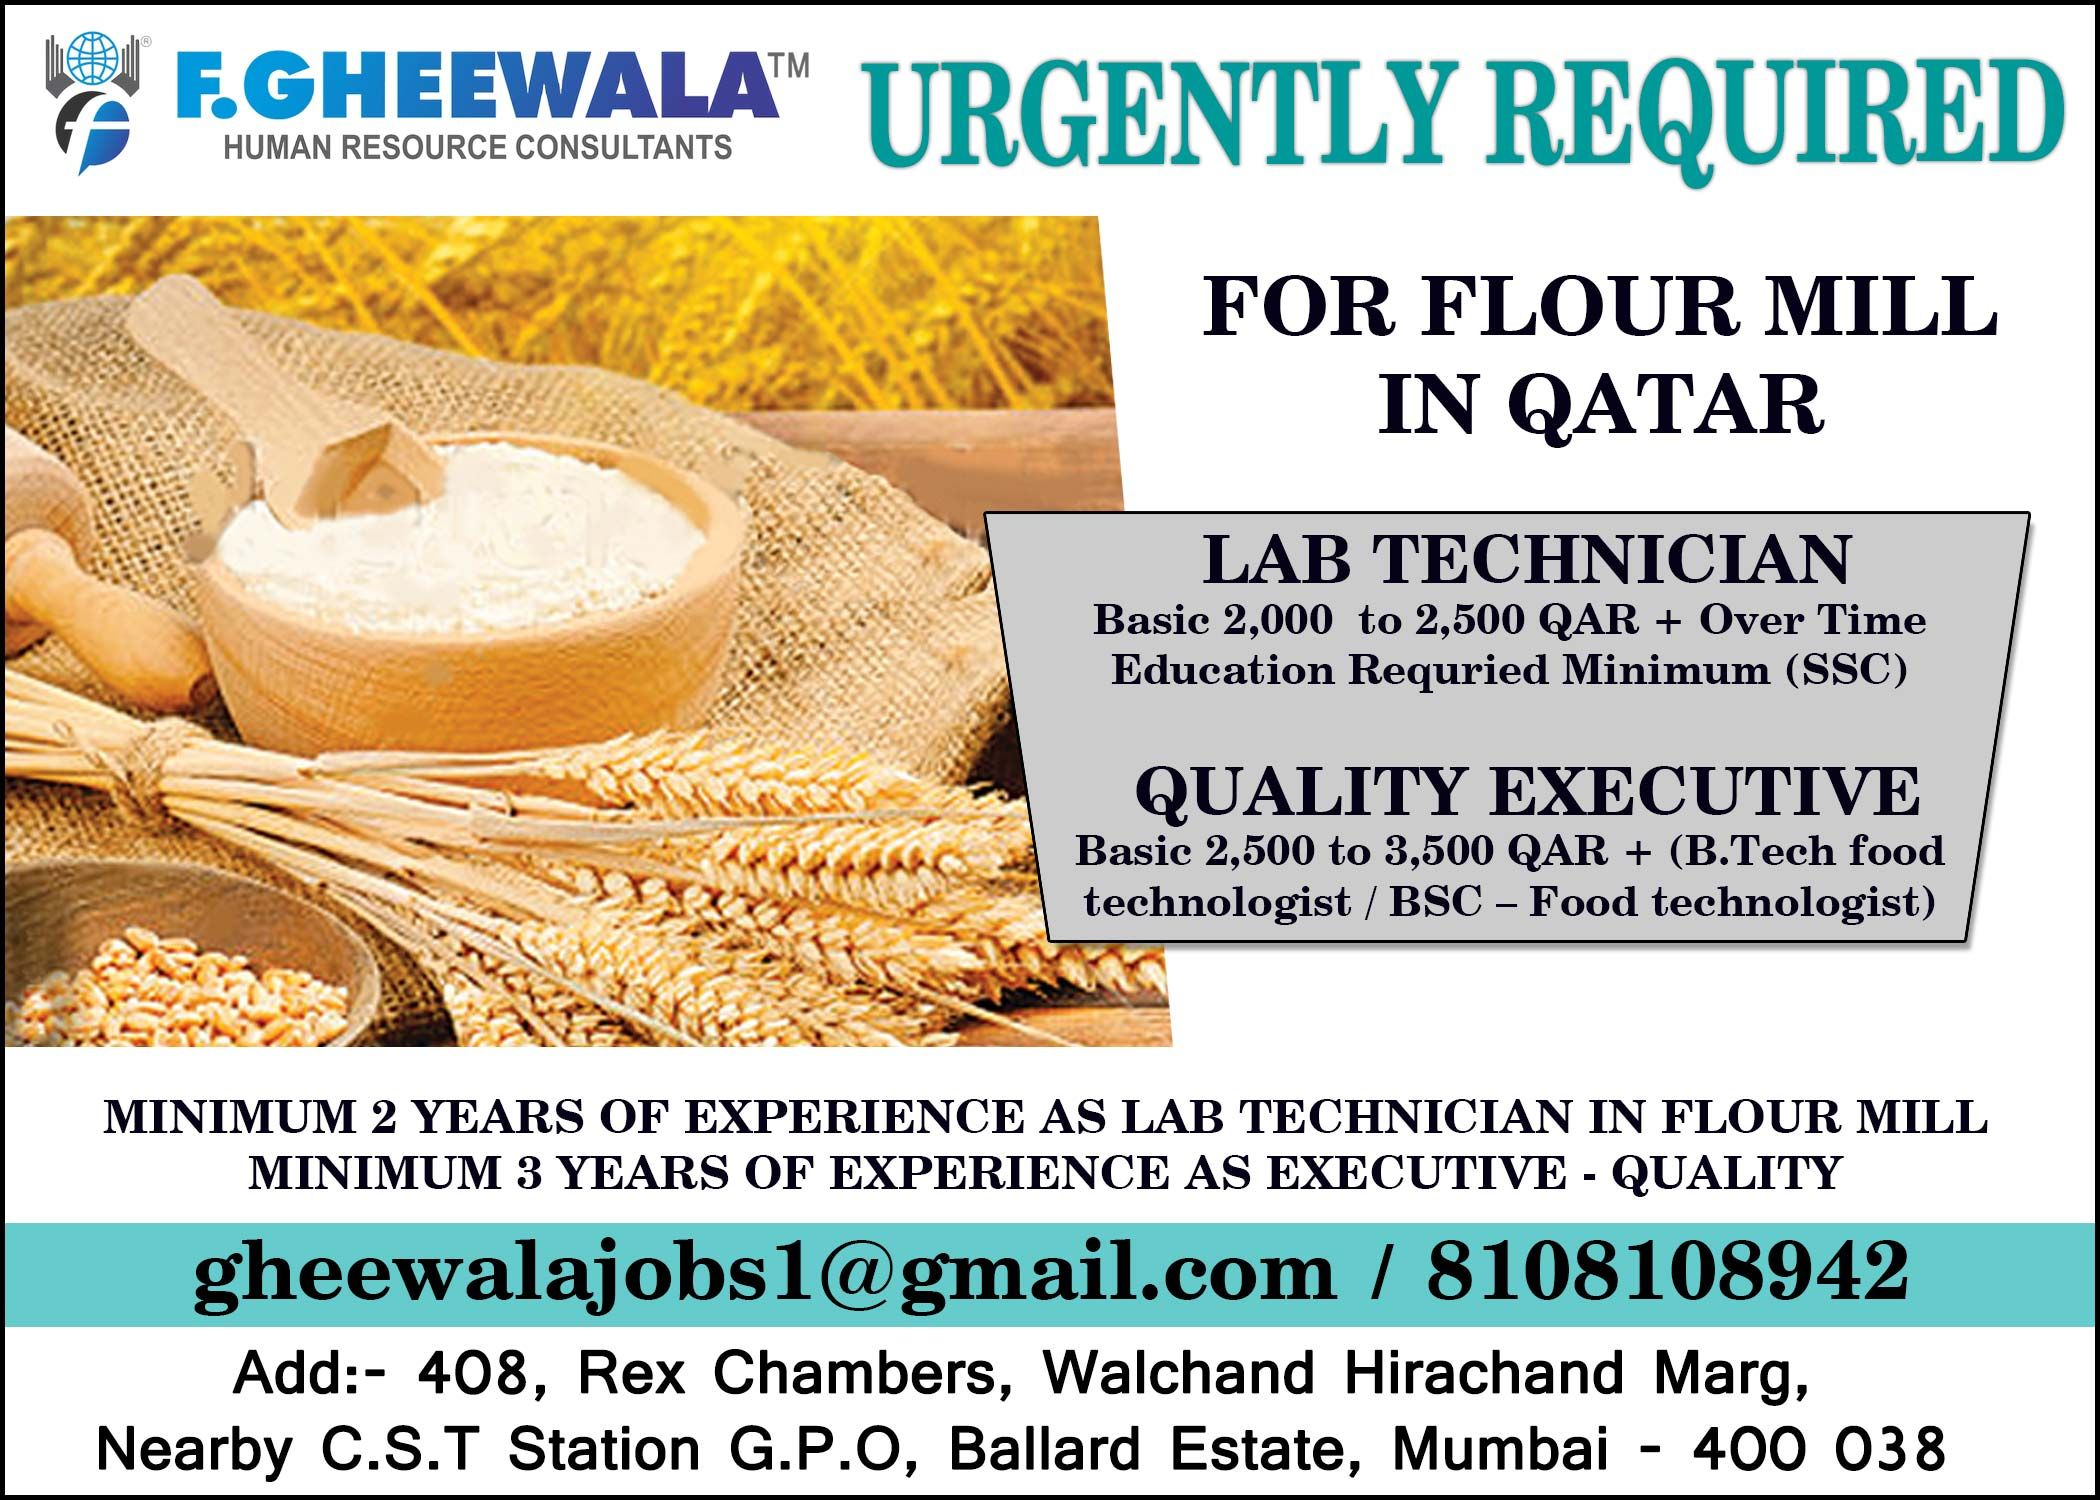 Urgently Required Lab Technician & Quality Executive for Flour Mill